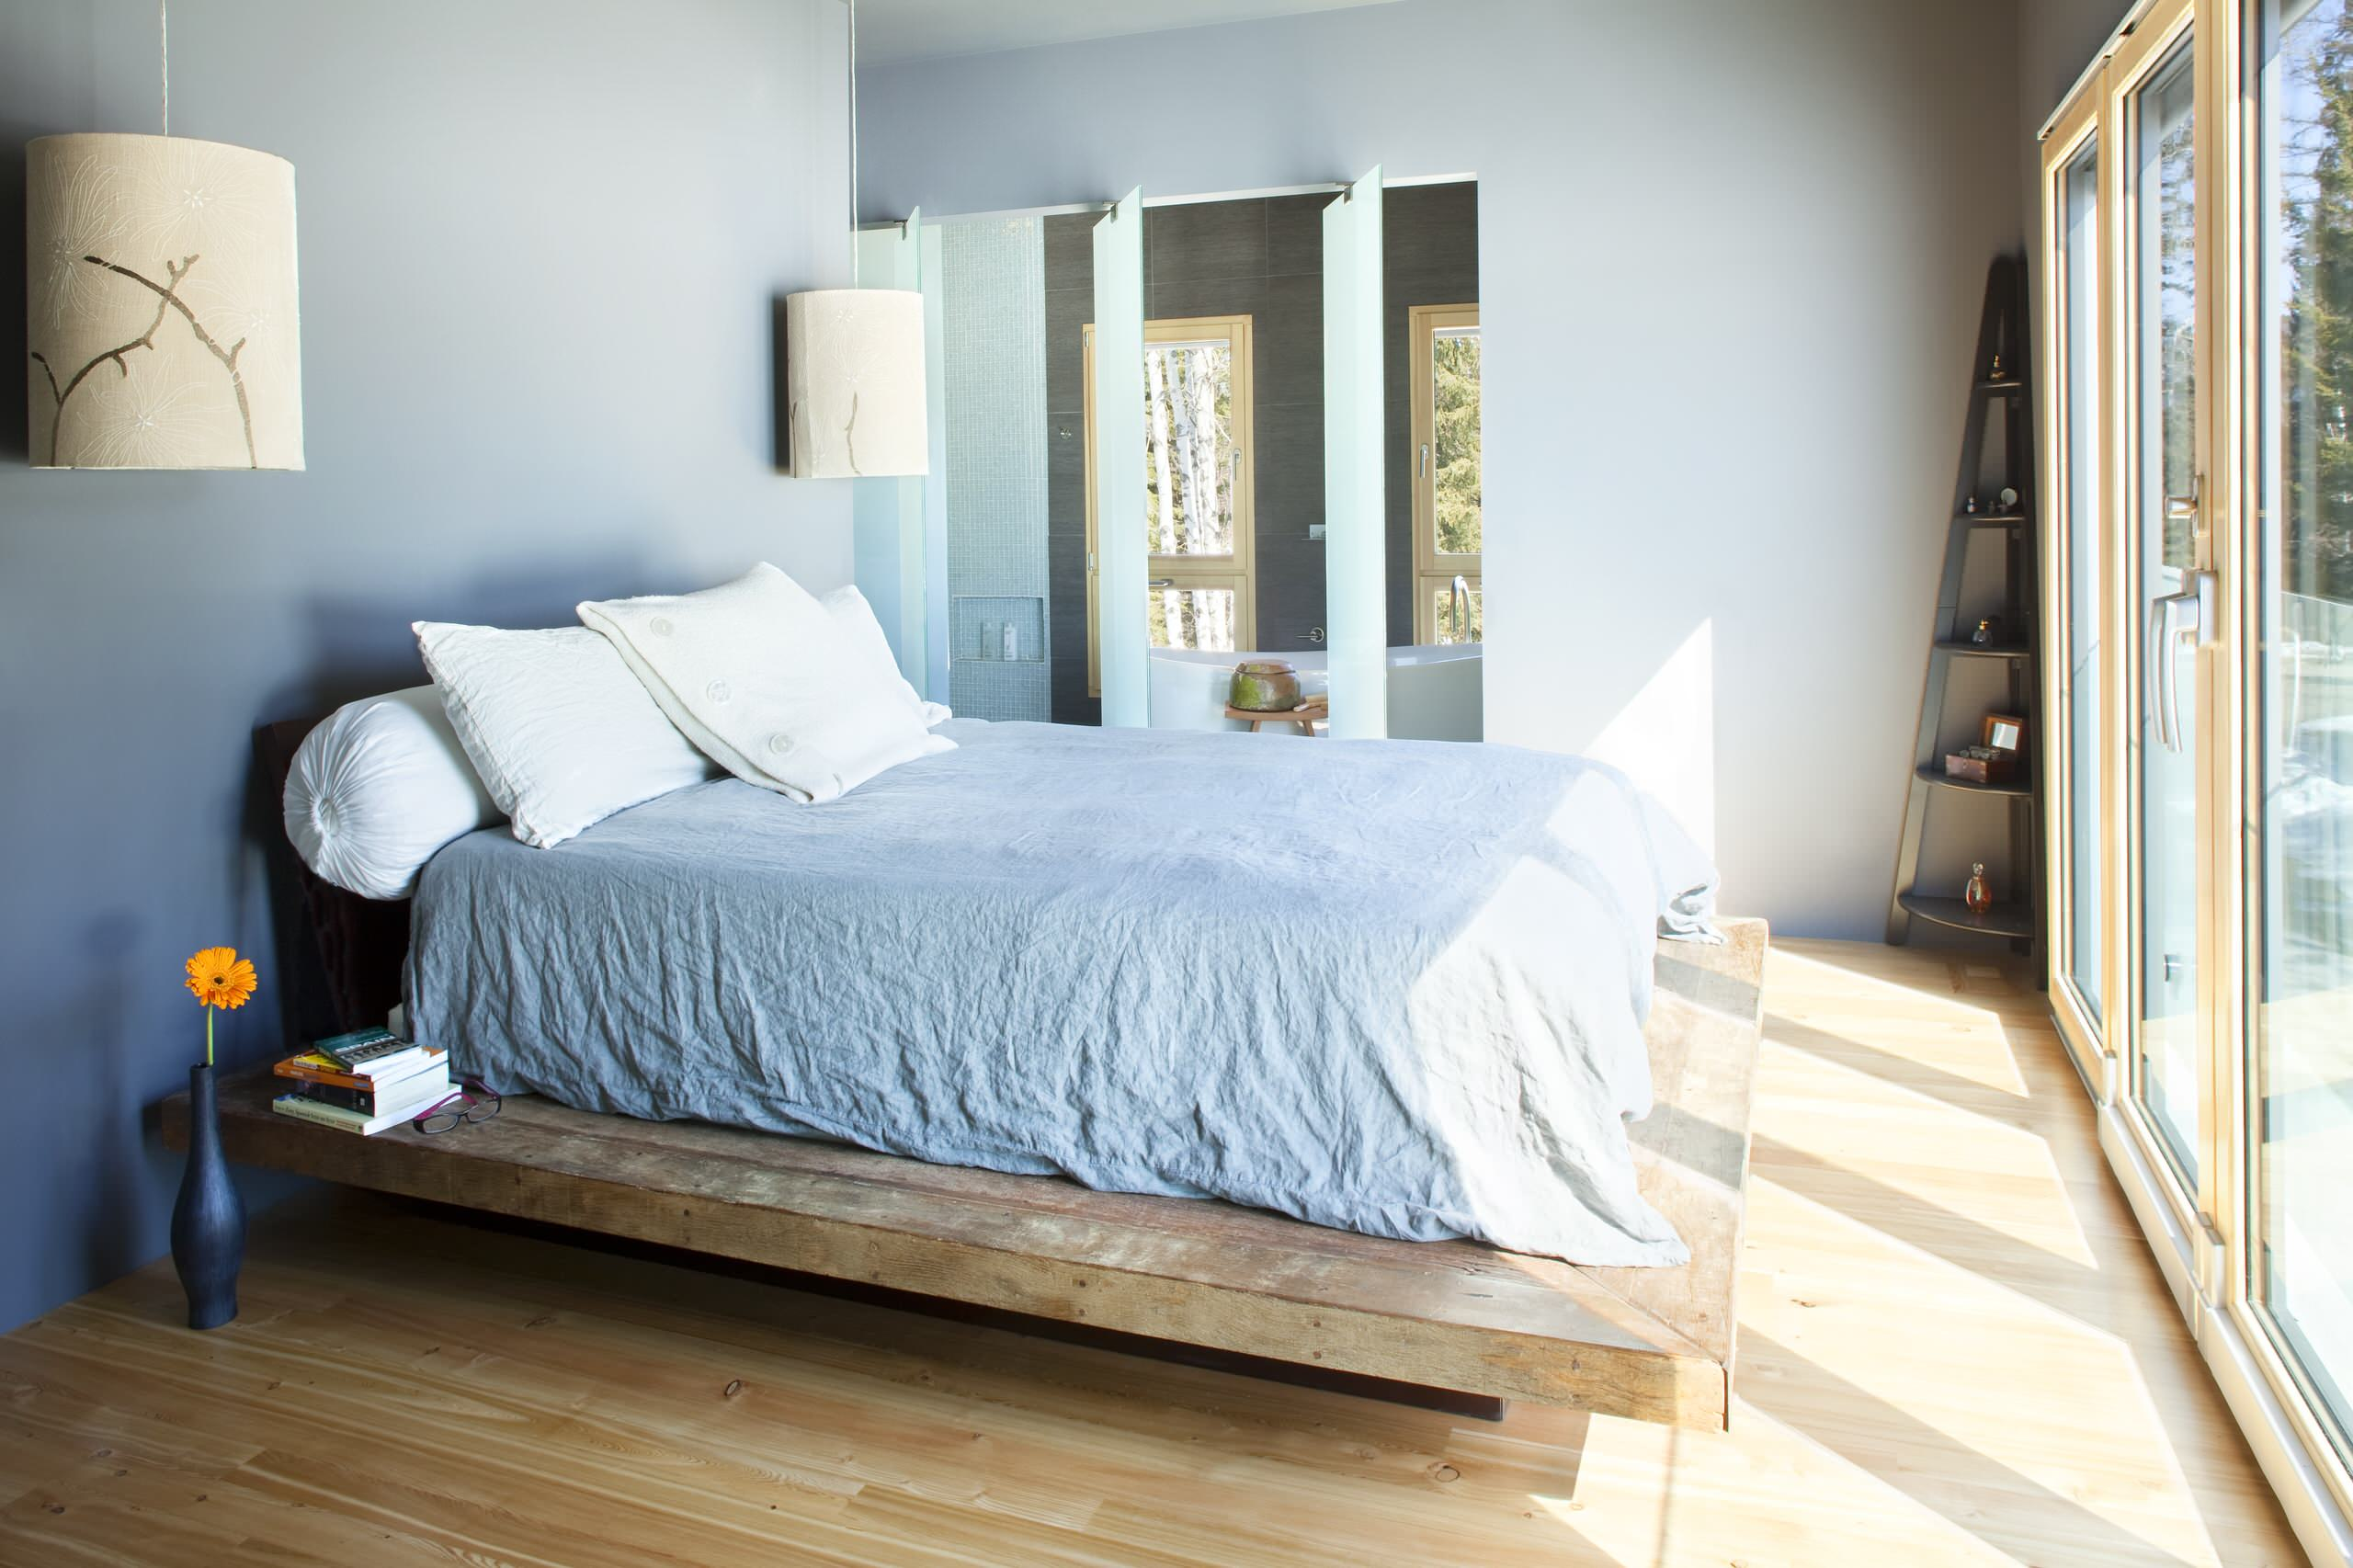 Bedroom: Contemporary Bedroom With Blue Wall Plus Ceiling Light And ...